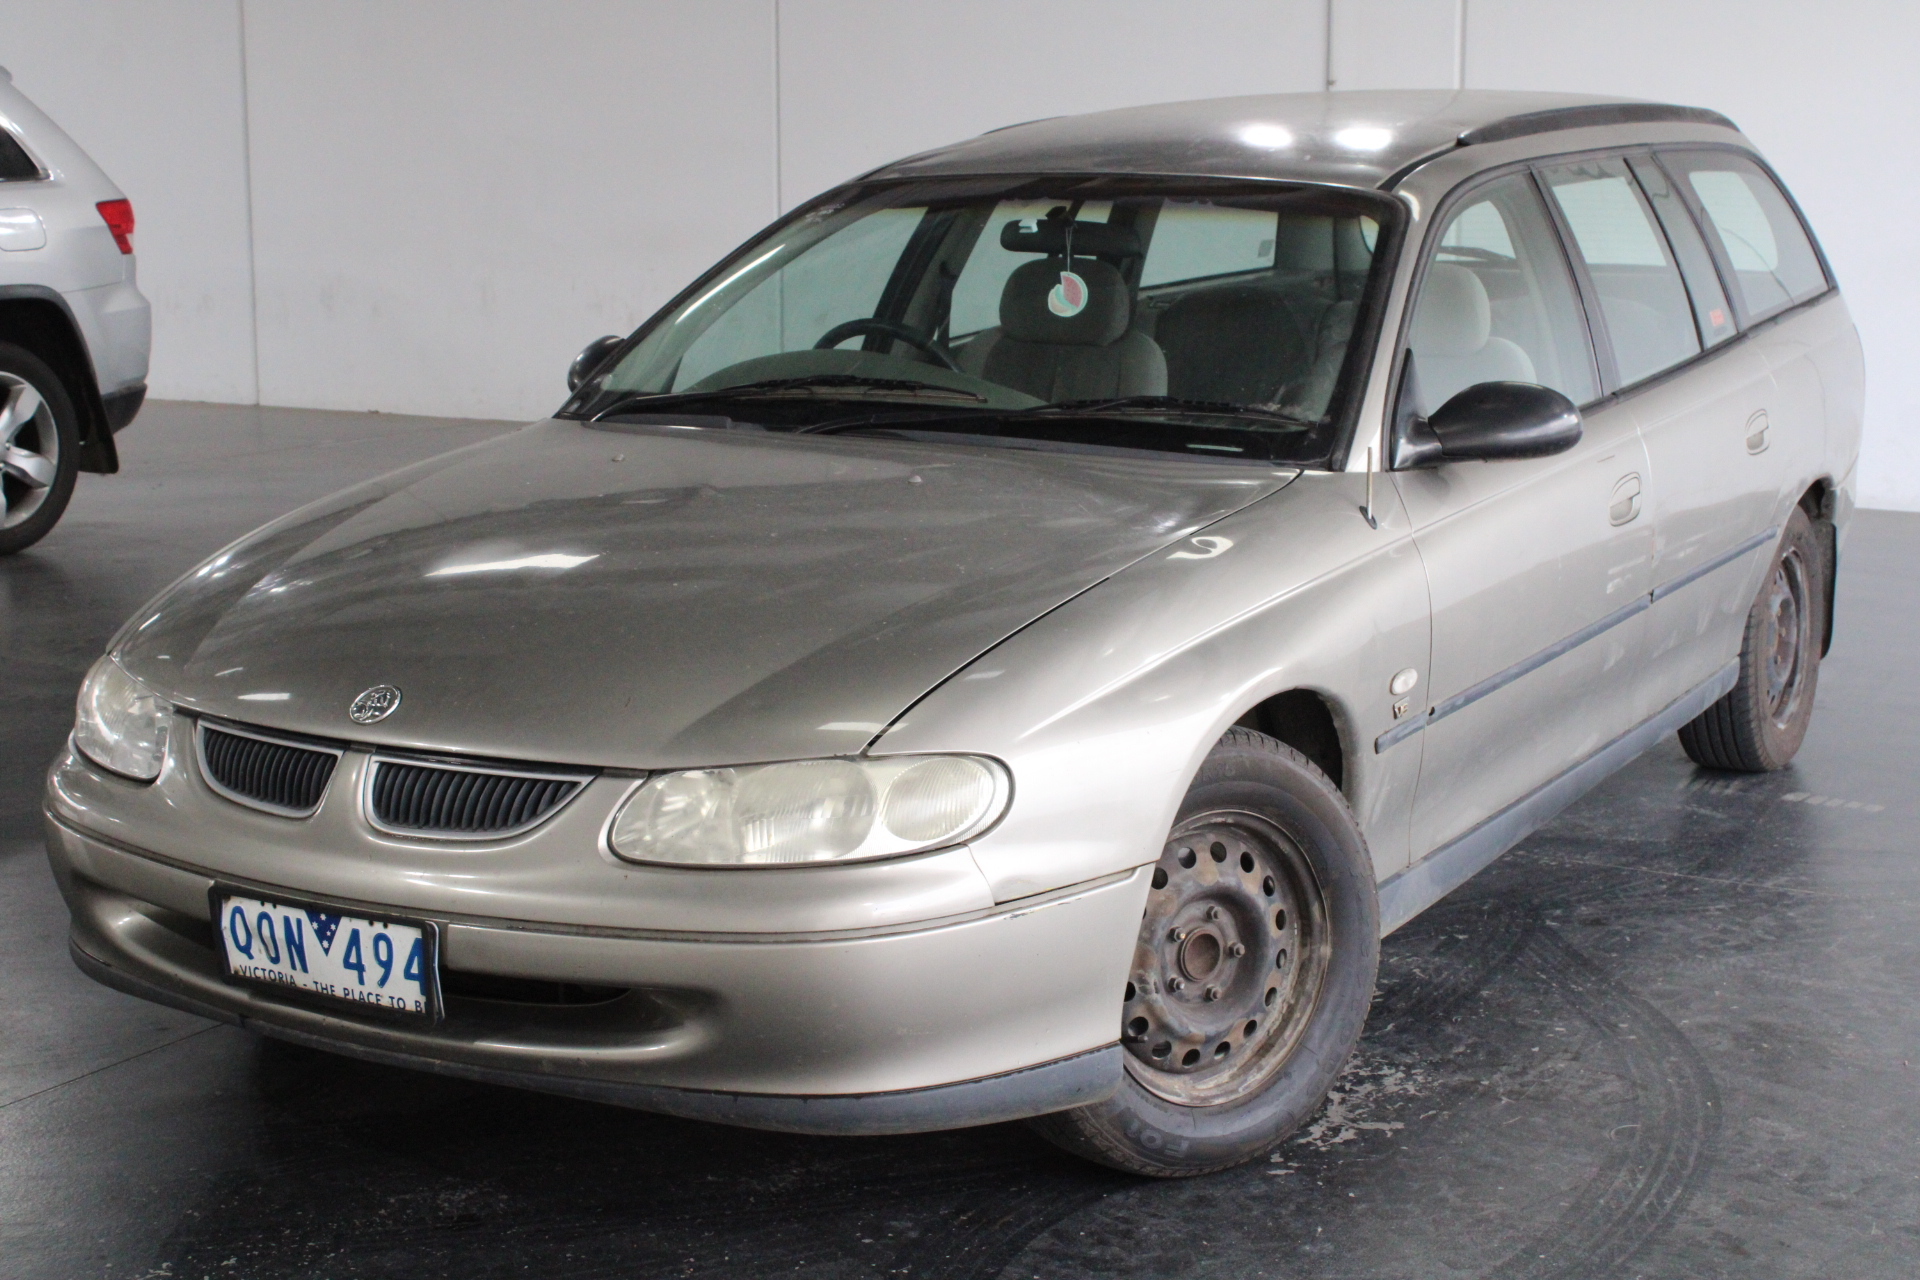 2000 Holden Commodore Executive VT Automatic Wagon